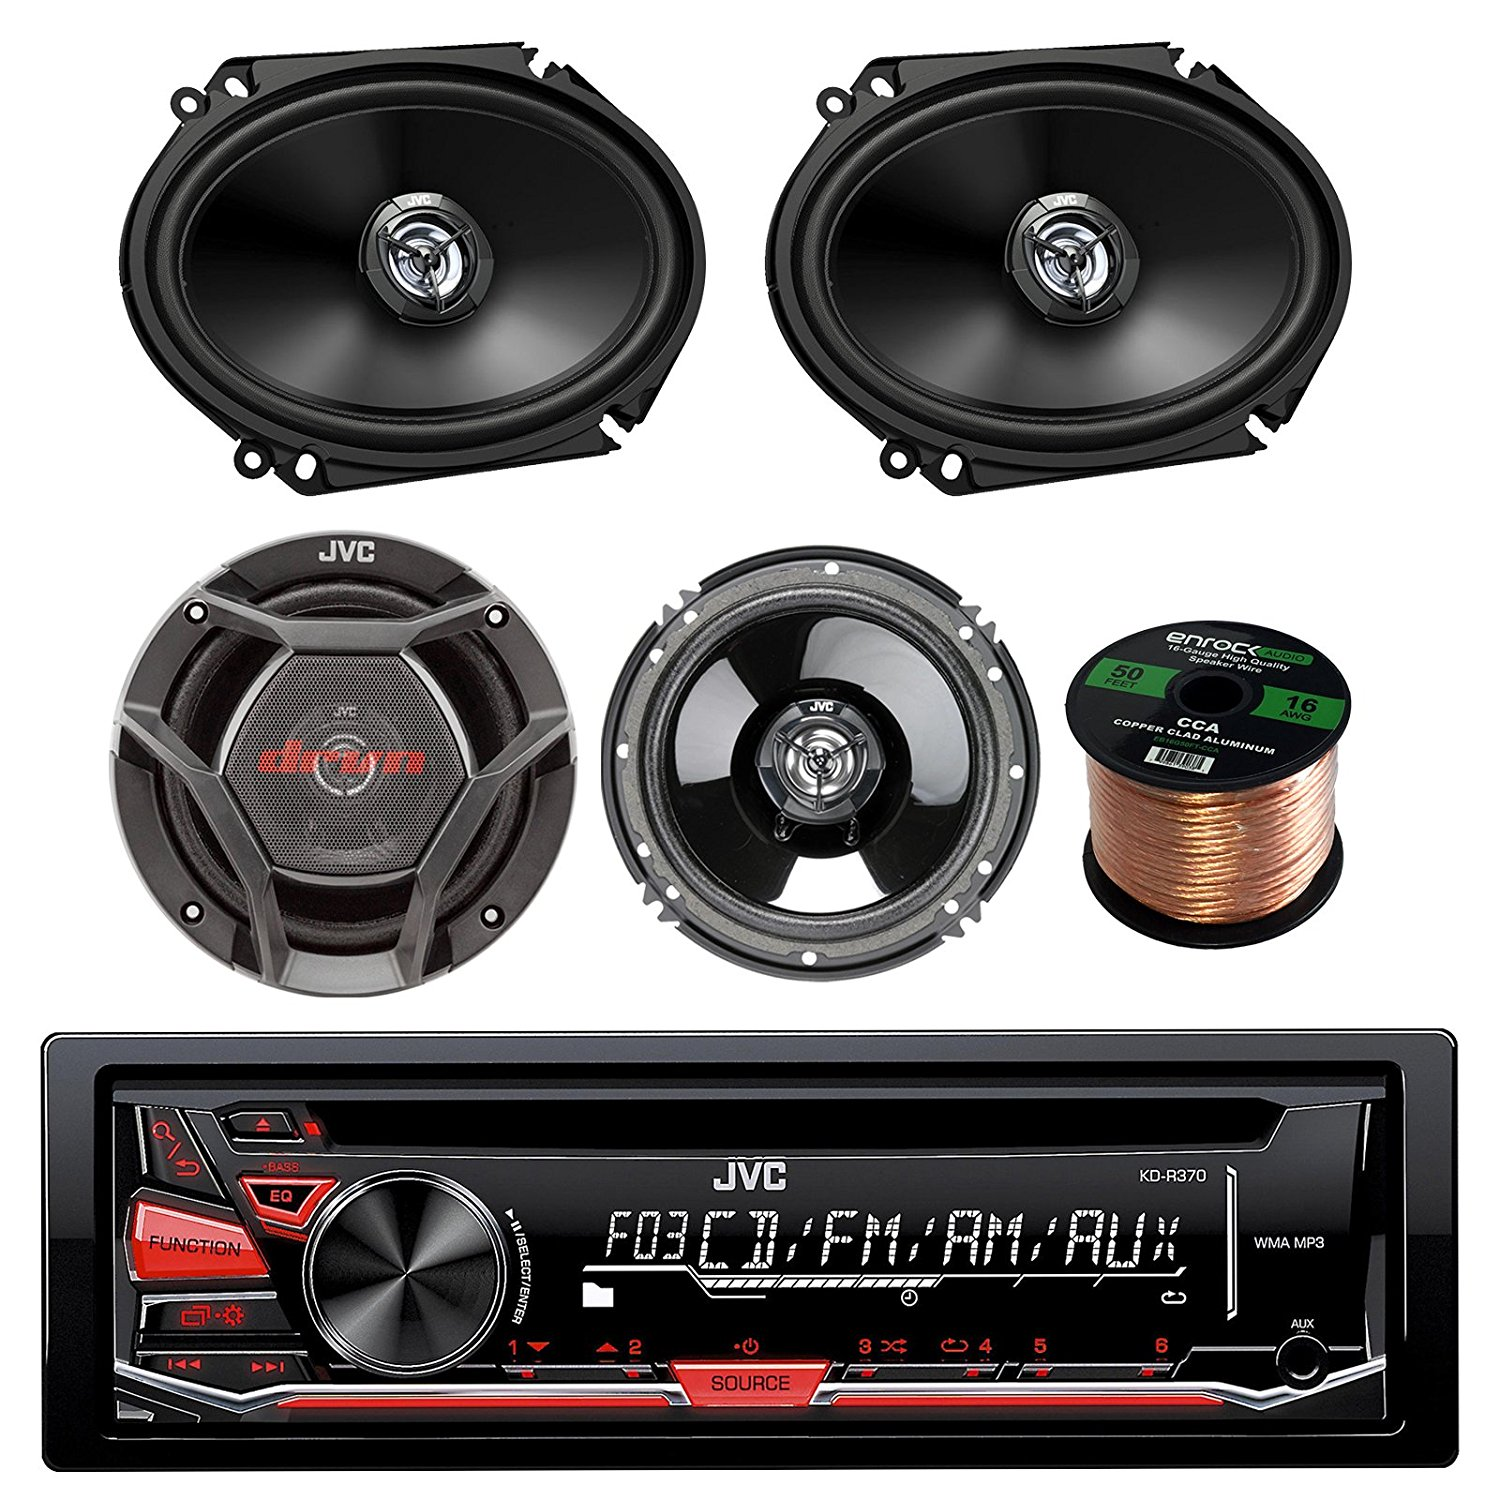 "JVC KD-R370 CD/MP3 AM/FM Radio Player Car Receiver Bundle Combo With 2x DR6820 300-Watt 6x8"" Inch Vehicle Coaxial Speakers + 2x DR620 6.5"" Inch 2-Way Audio Speakers + Enrock 50 Feet 16-Gauge Wire"